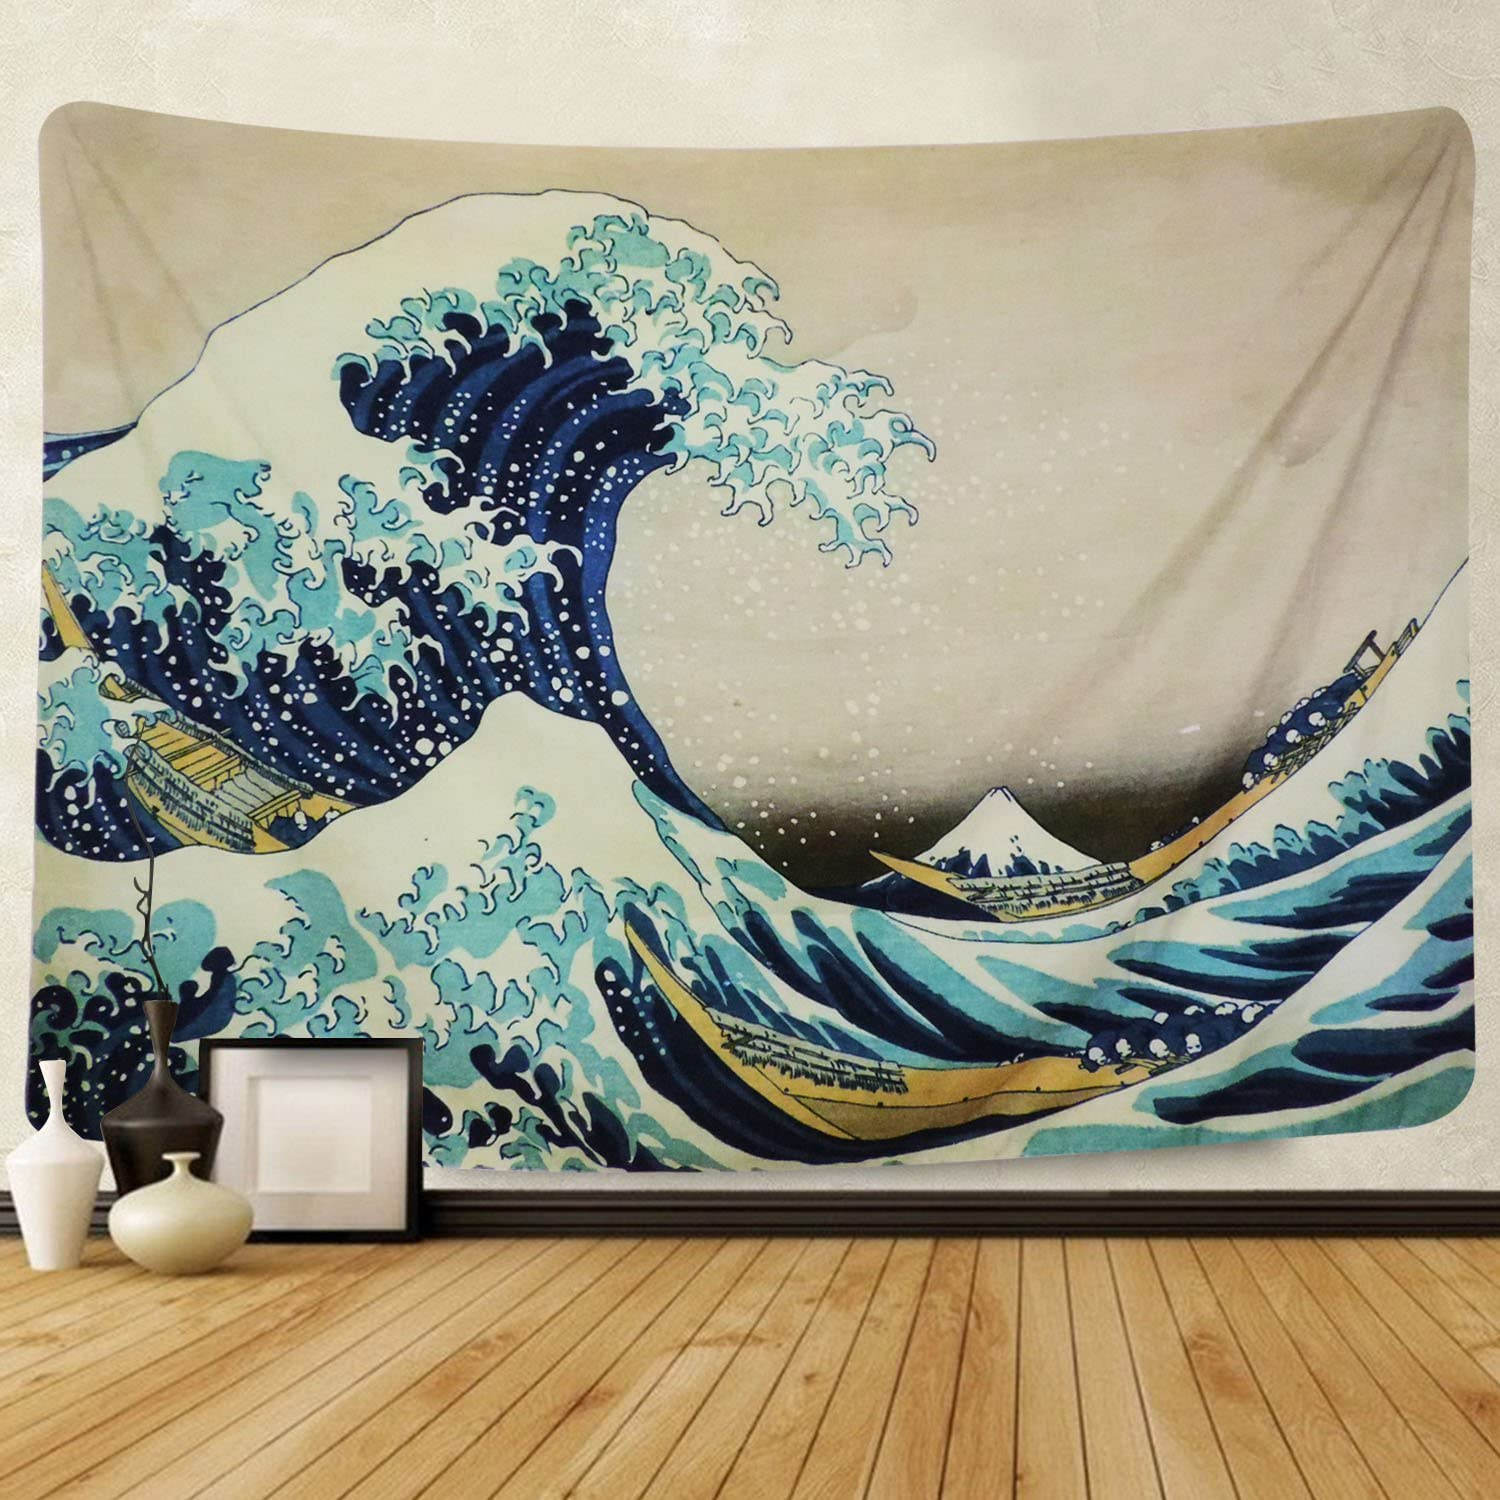 Sunm Boutique Tapestry Wall Tapestry Wall Hanging Tapestries The Great Wave Off Kanagawa Katsushika Hokusai Thirty-six Views Mount Fuji Tapestry, Wall Art for Home Decor